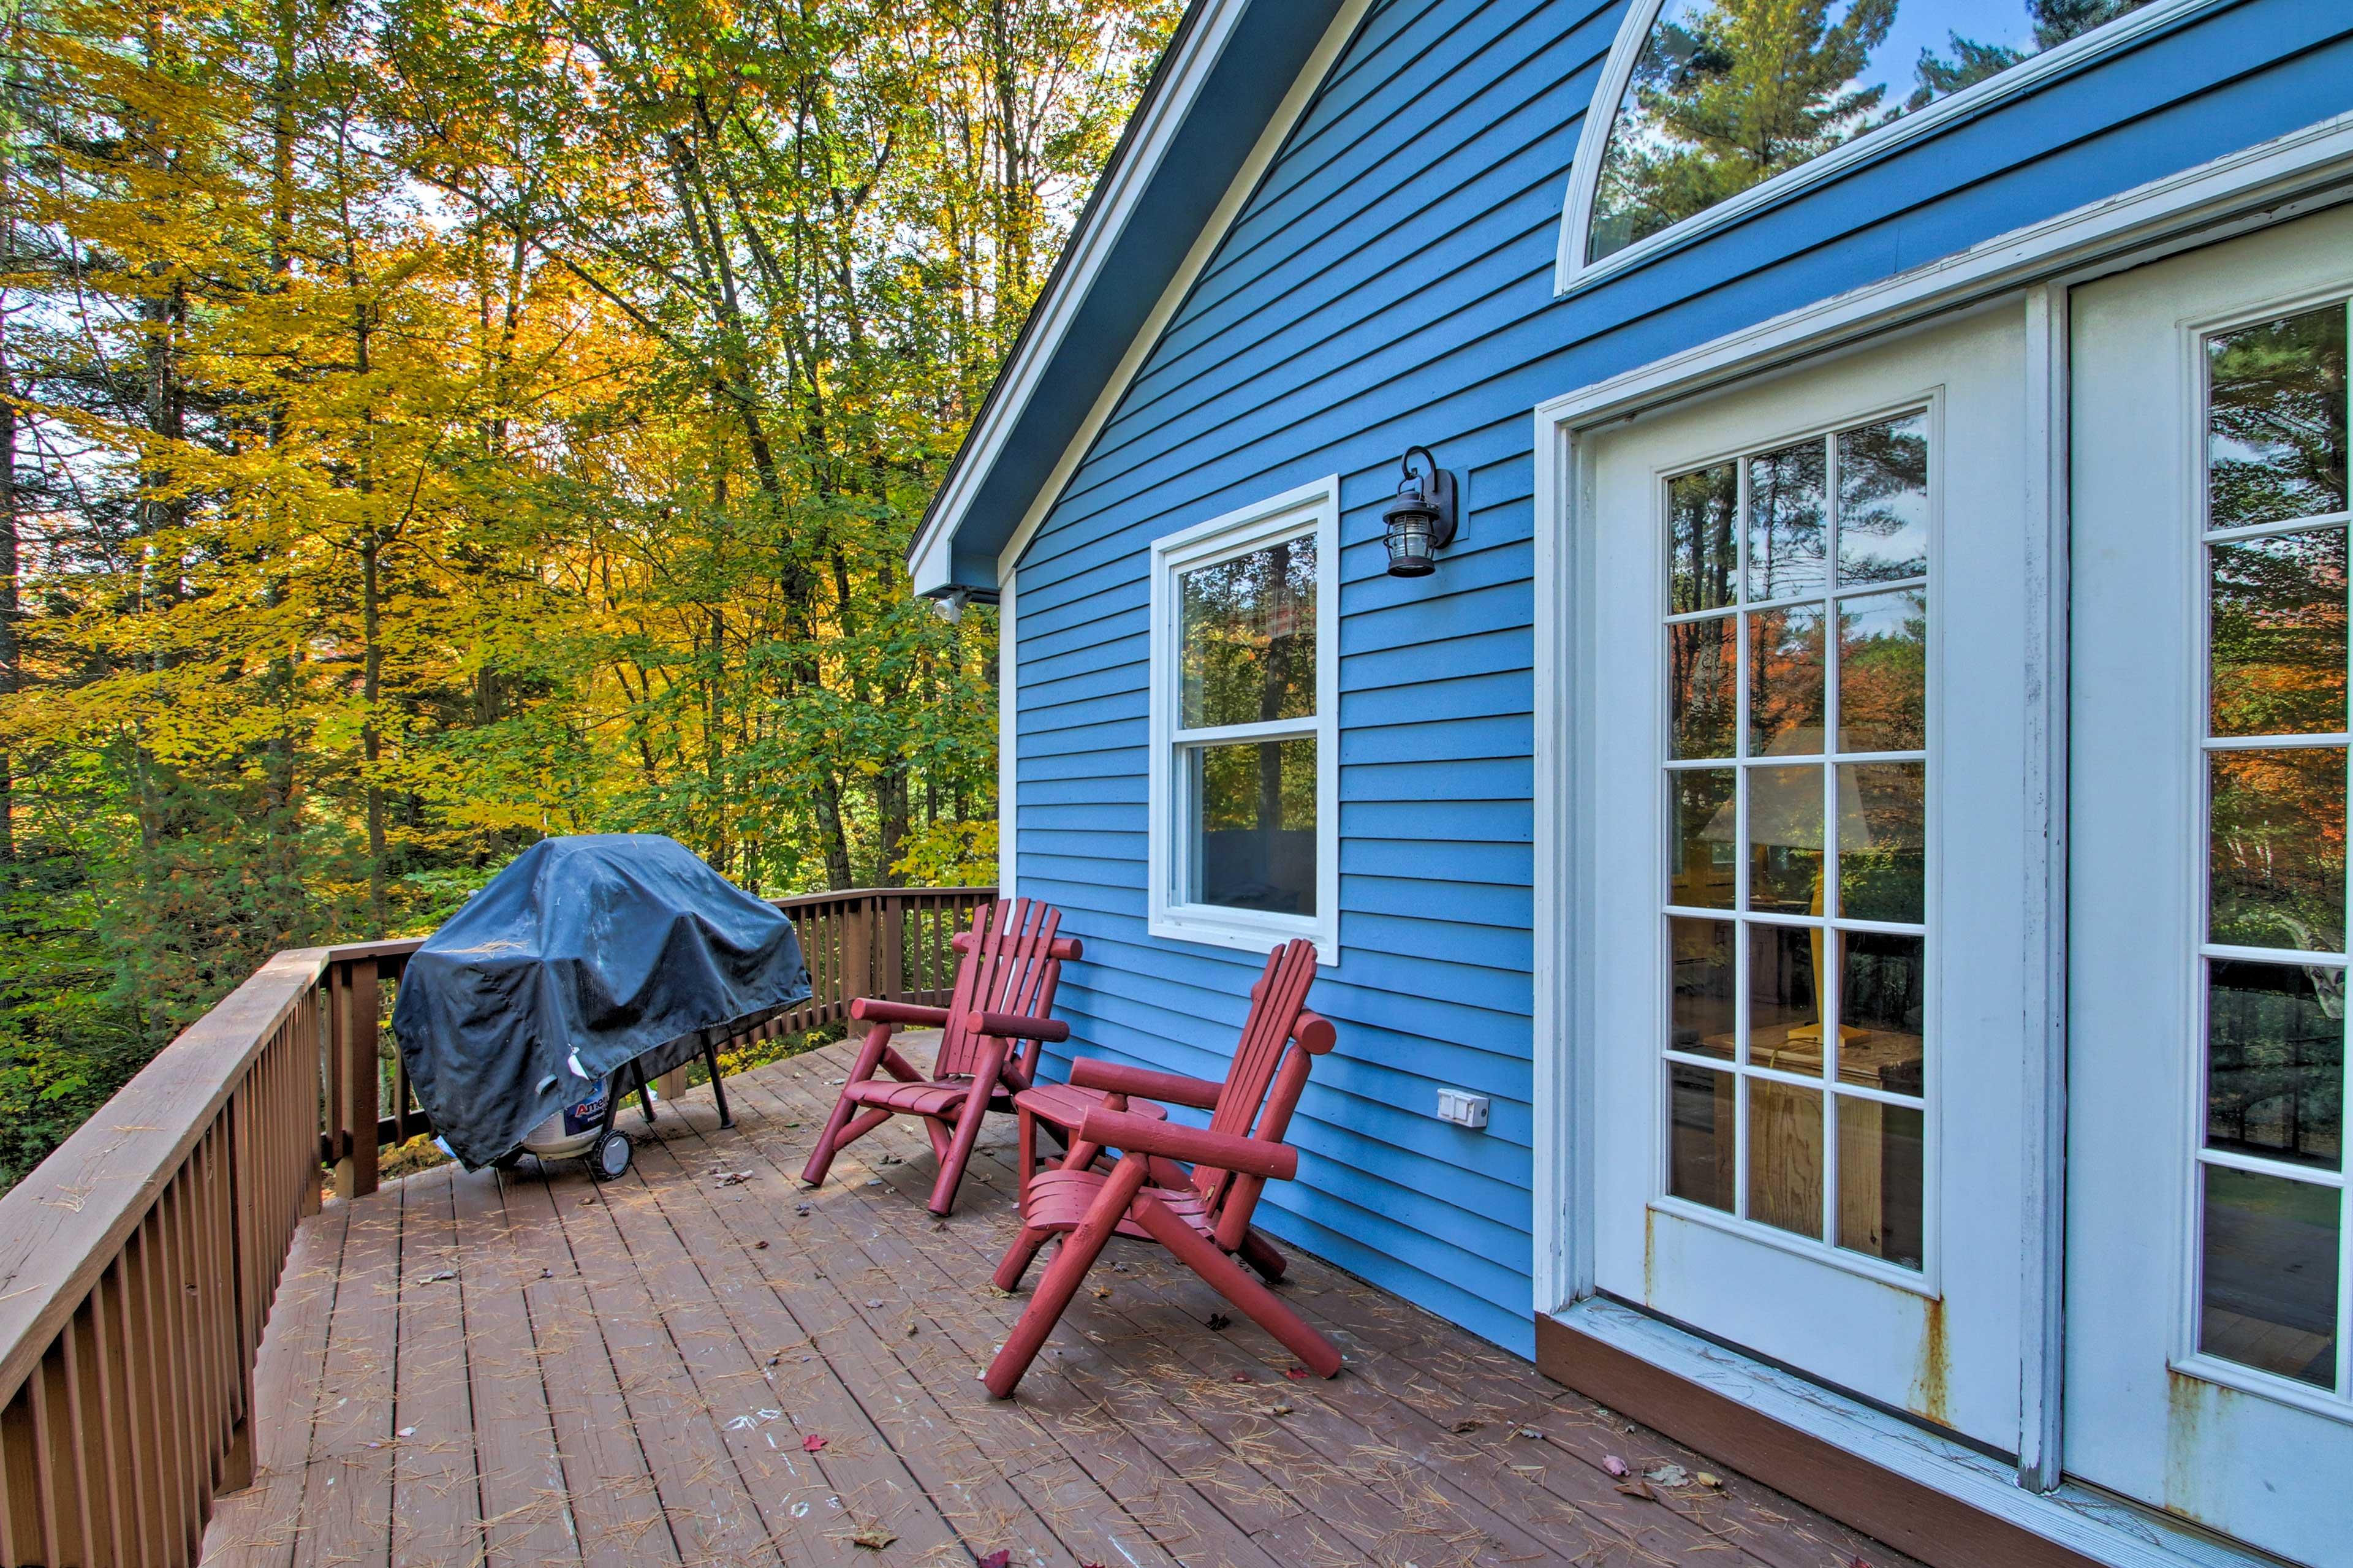 Relax on the deck, furnished with chairs and a gas grill.